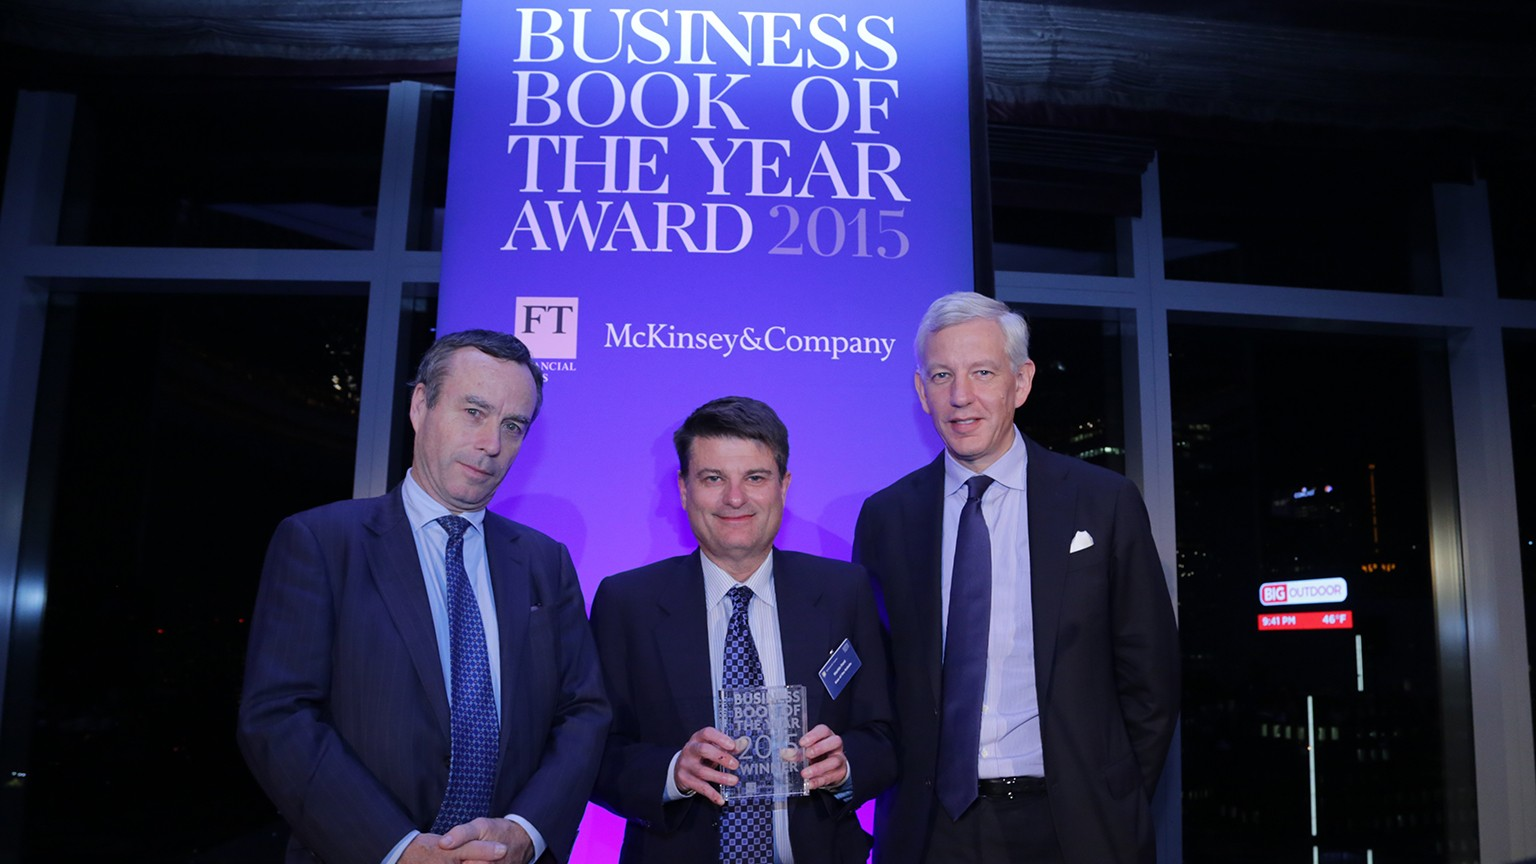 Robots and risk at the Business Book of the Year awards